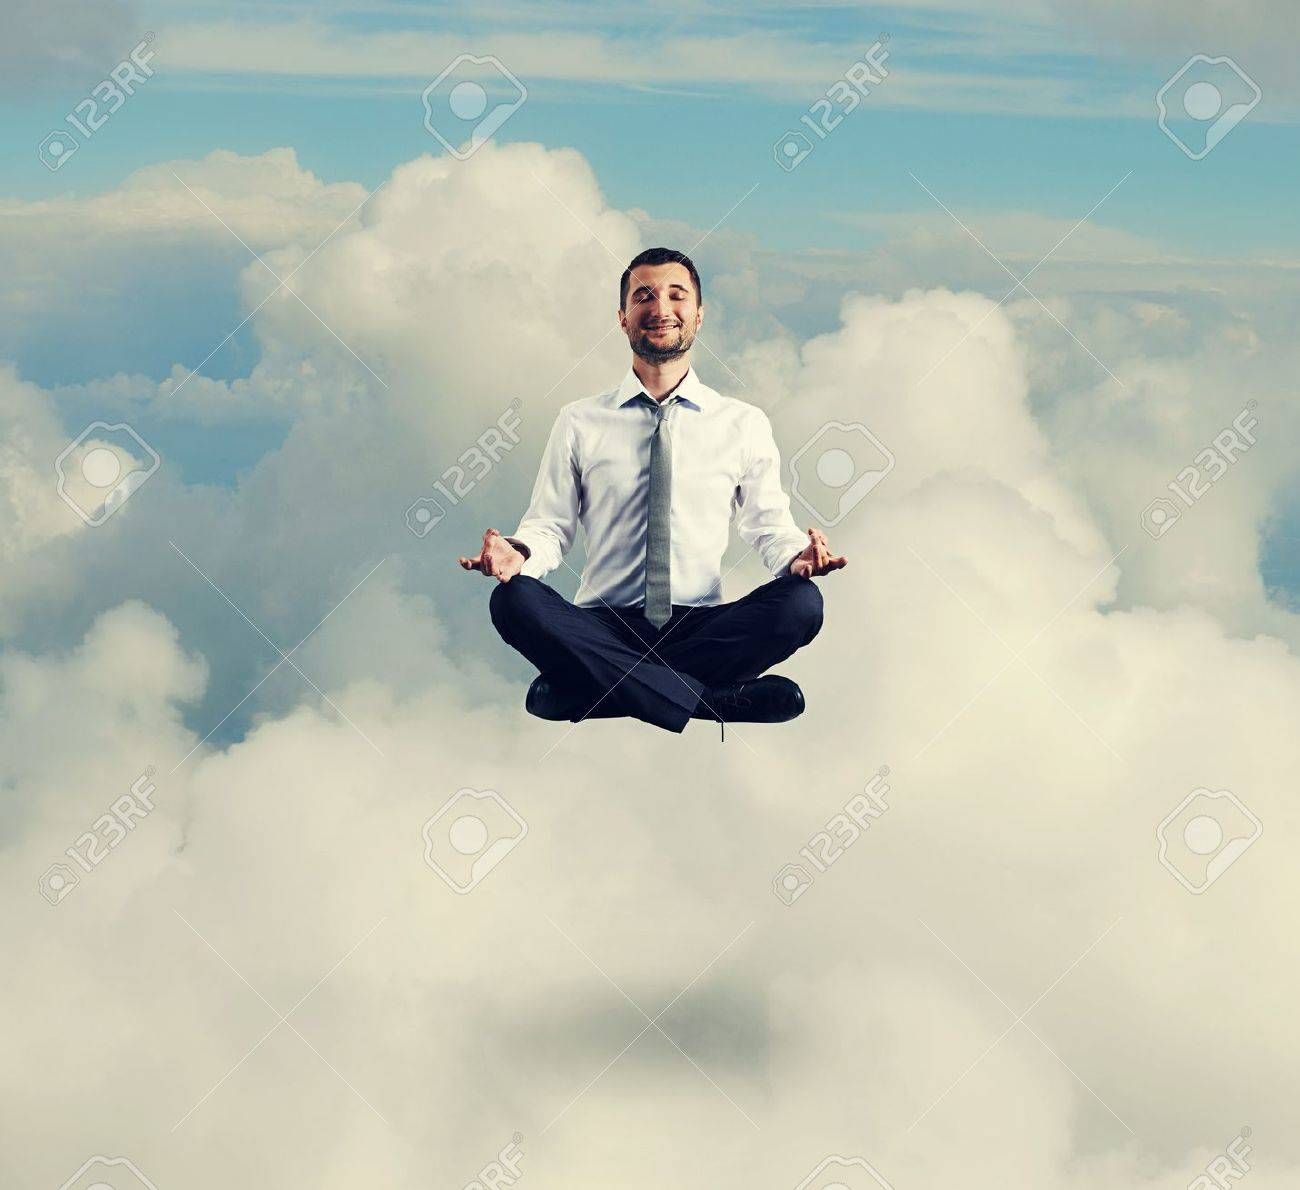 meditation businessman office. meditation man happy businessman in formal wear meditating the sky office